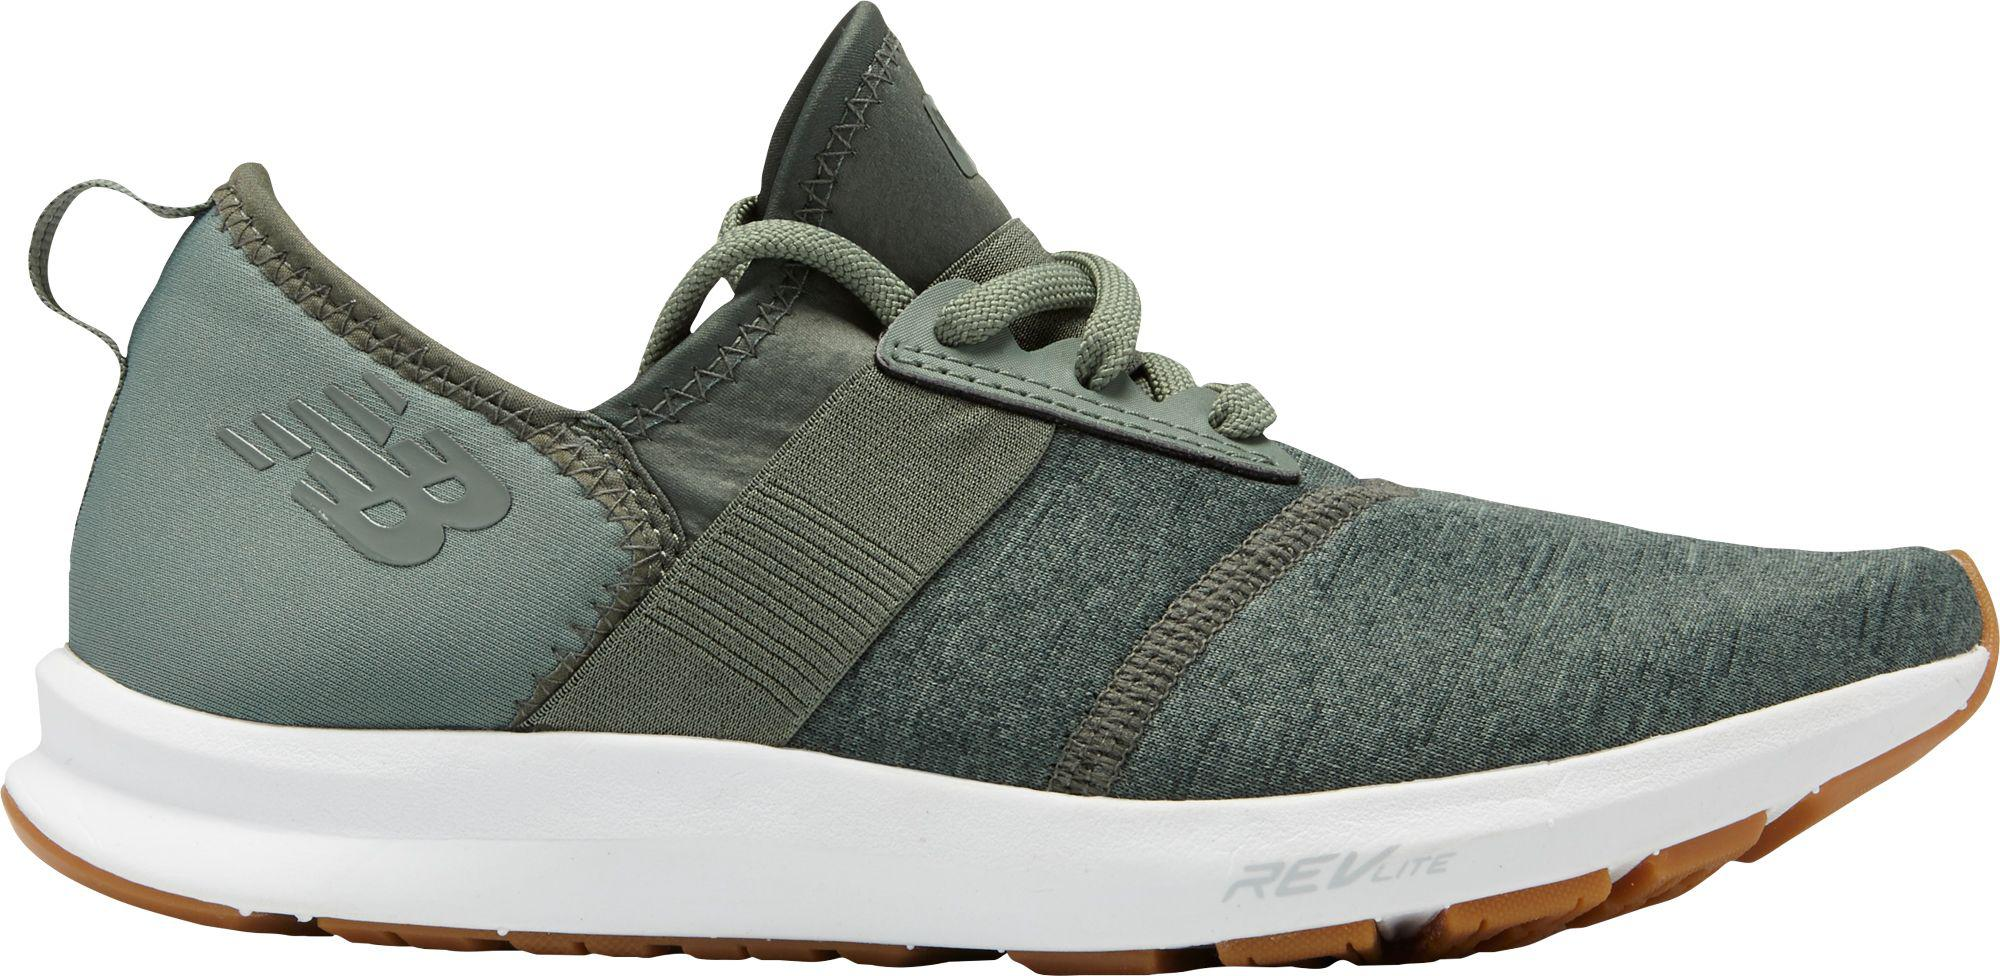 429835a4 New Balance Green Fuel Core Nergize Walking Shoes